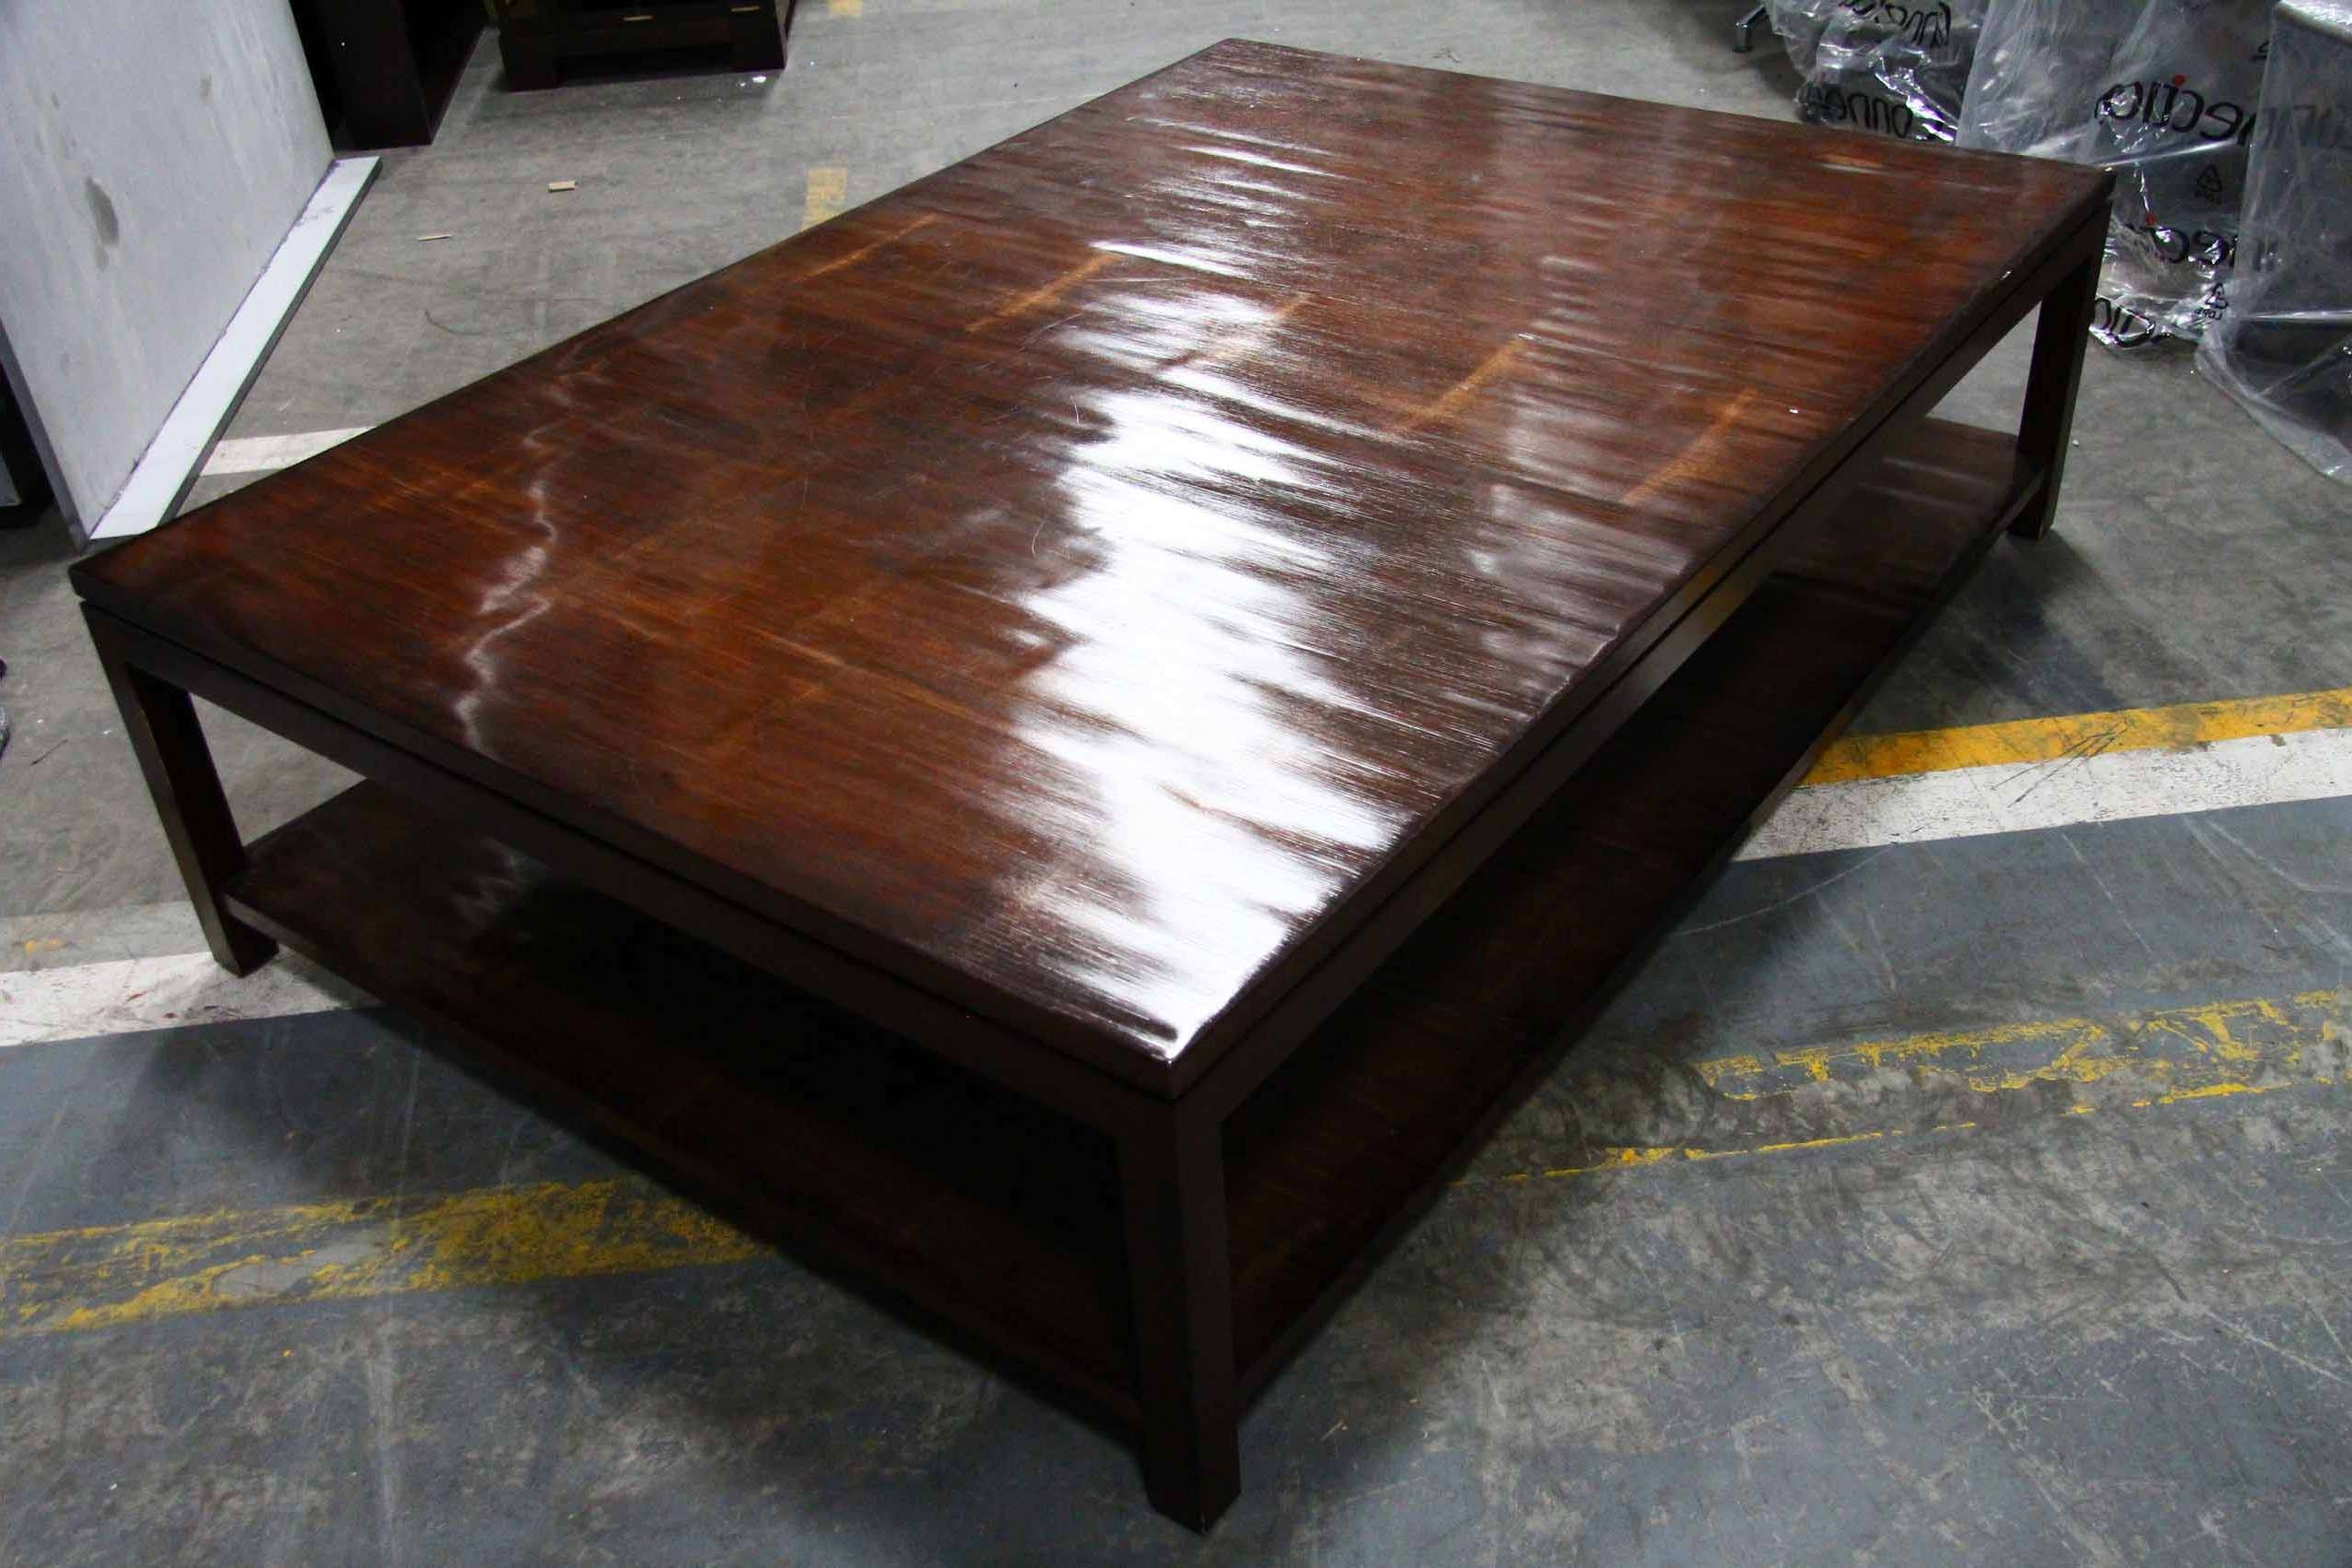 Most Current Low Coffee Tables With Storage Inside Simple Dark Wood Low Coffee Table Large Coffee Table With Storage (View 11 of 20)